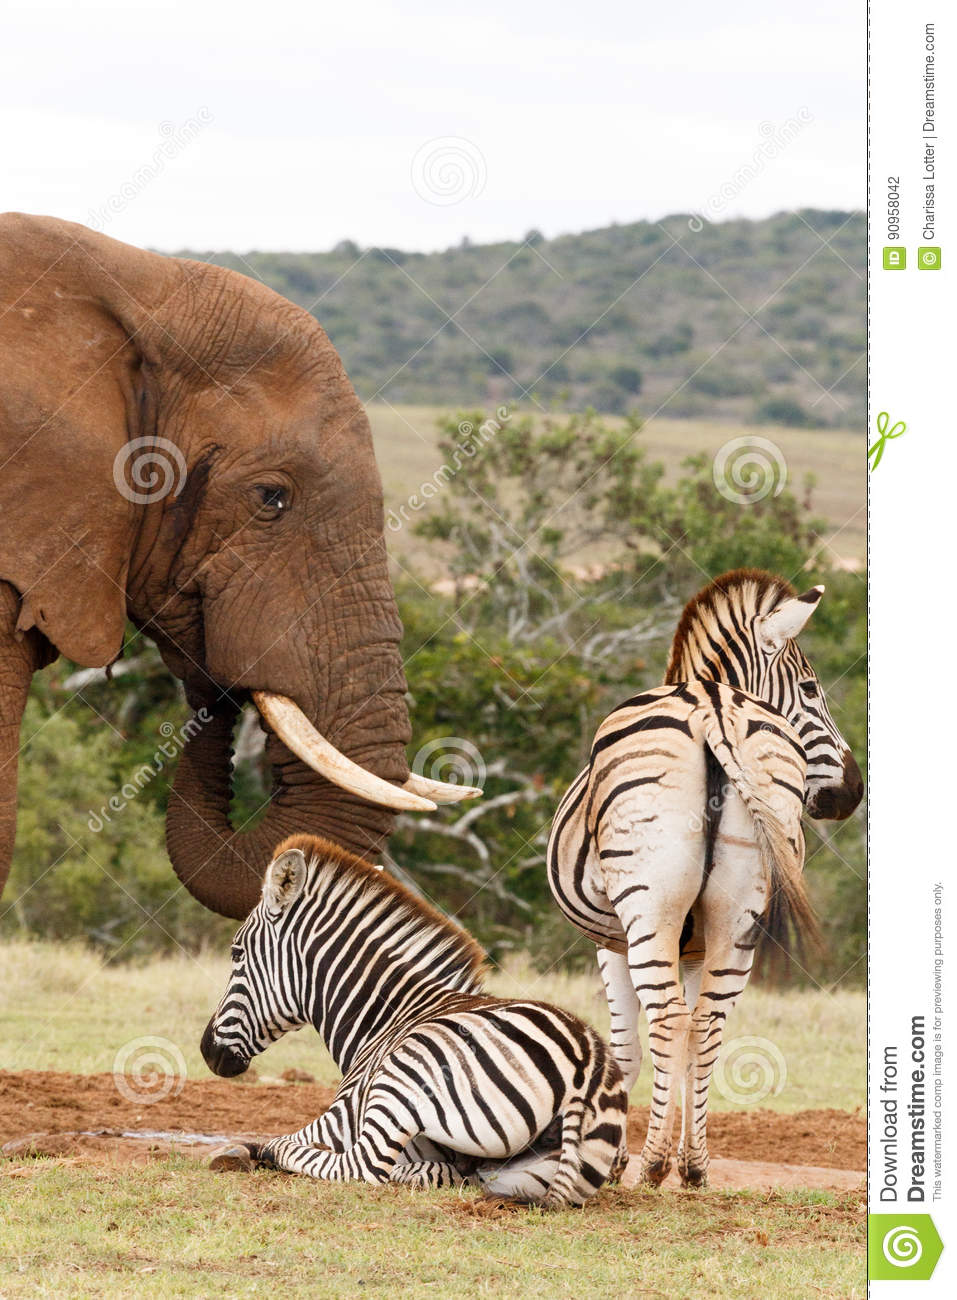 Elephant drinking water while the Zebras are waiting